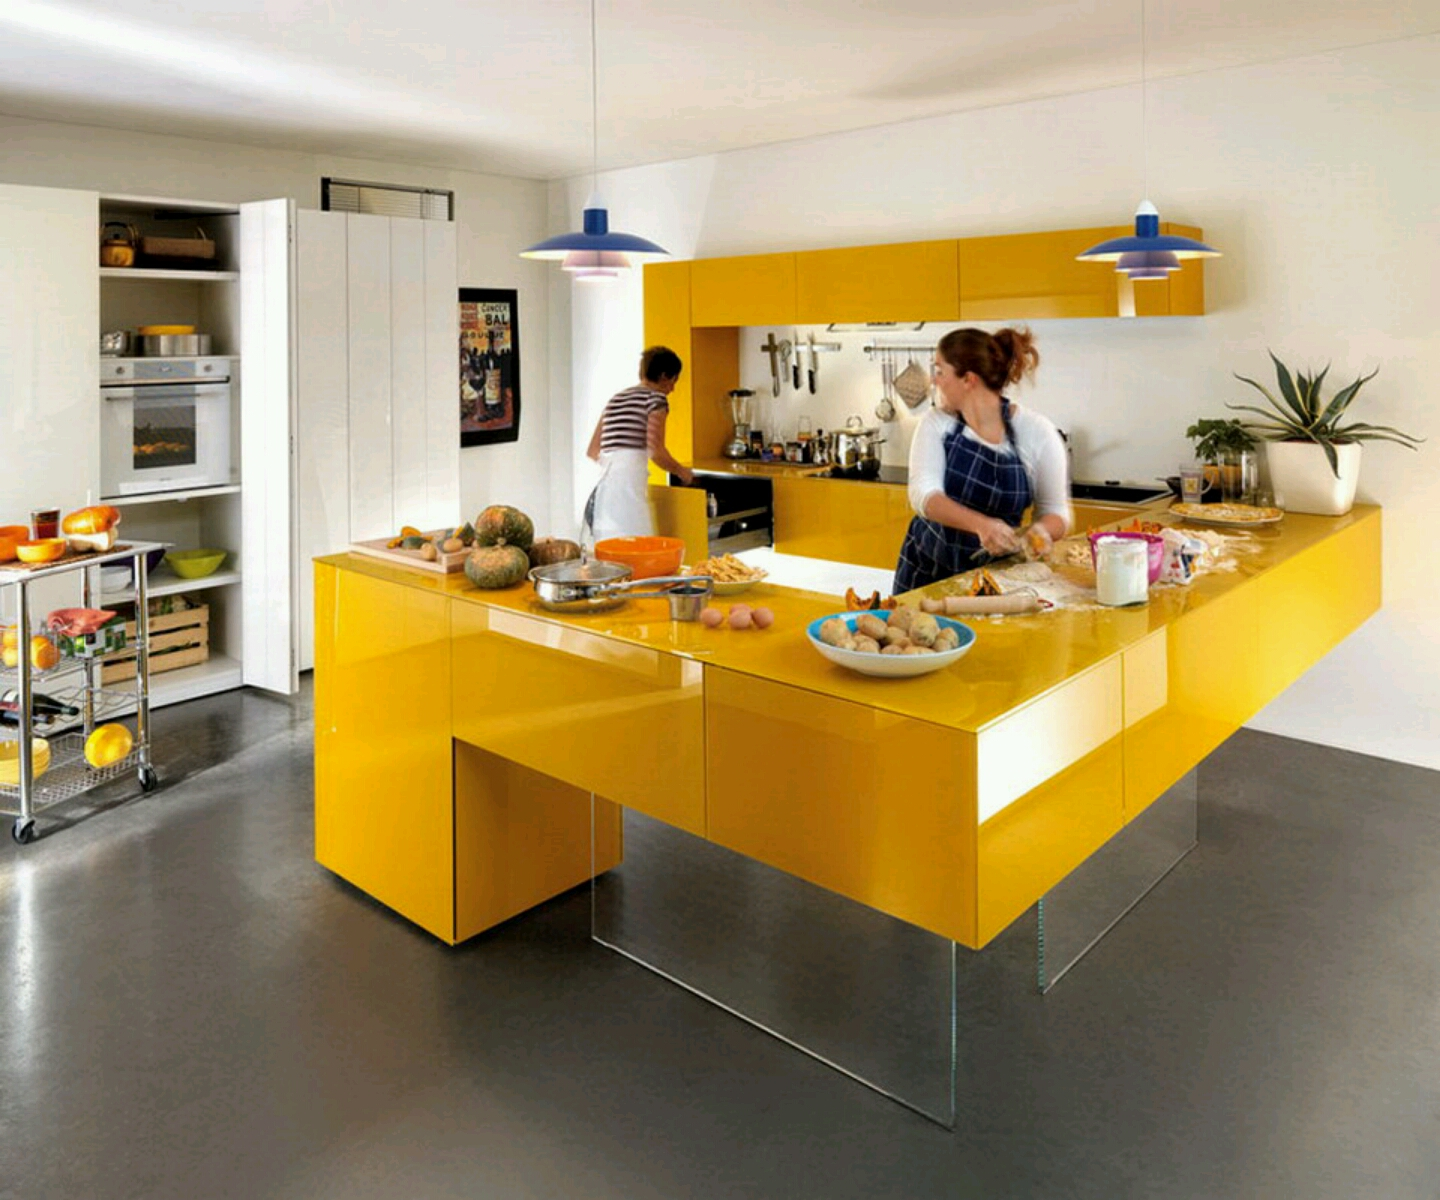 Modern kitchen cabinets designs ideas furniture gallery for Kitchen design modern style